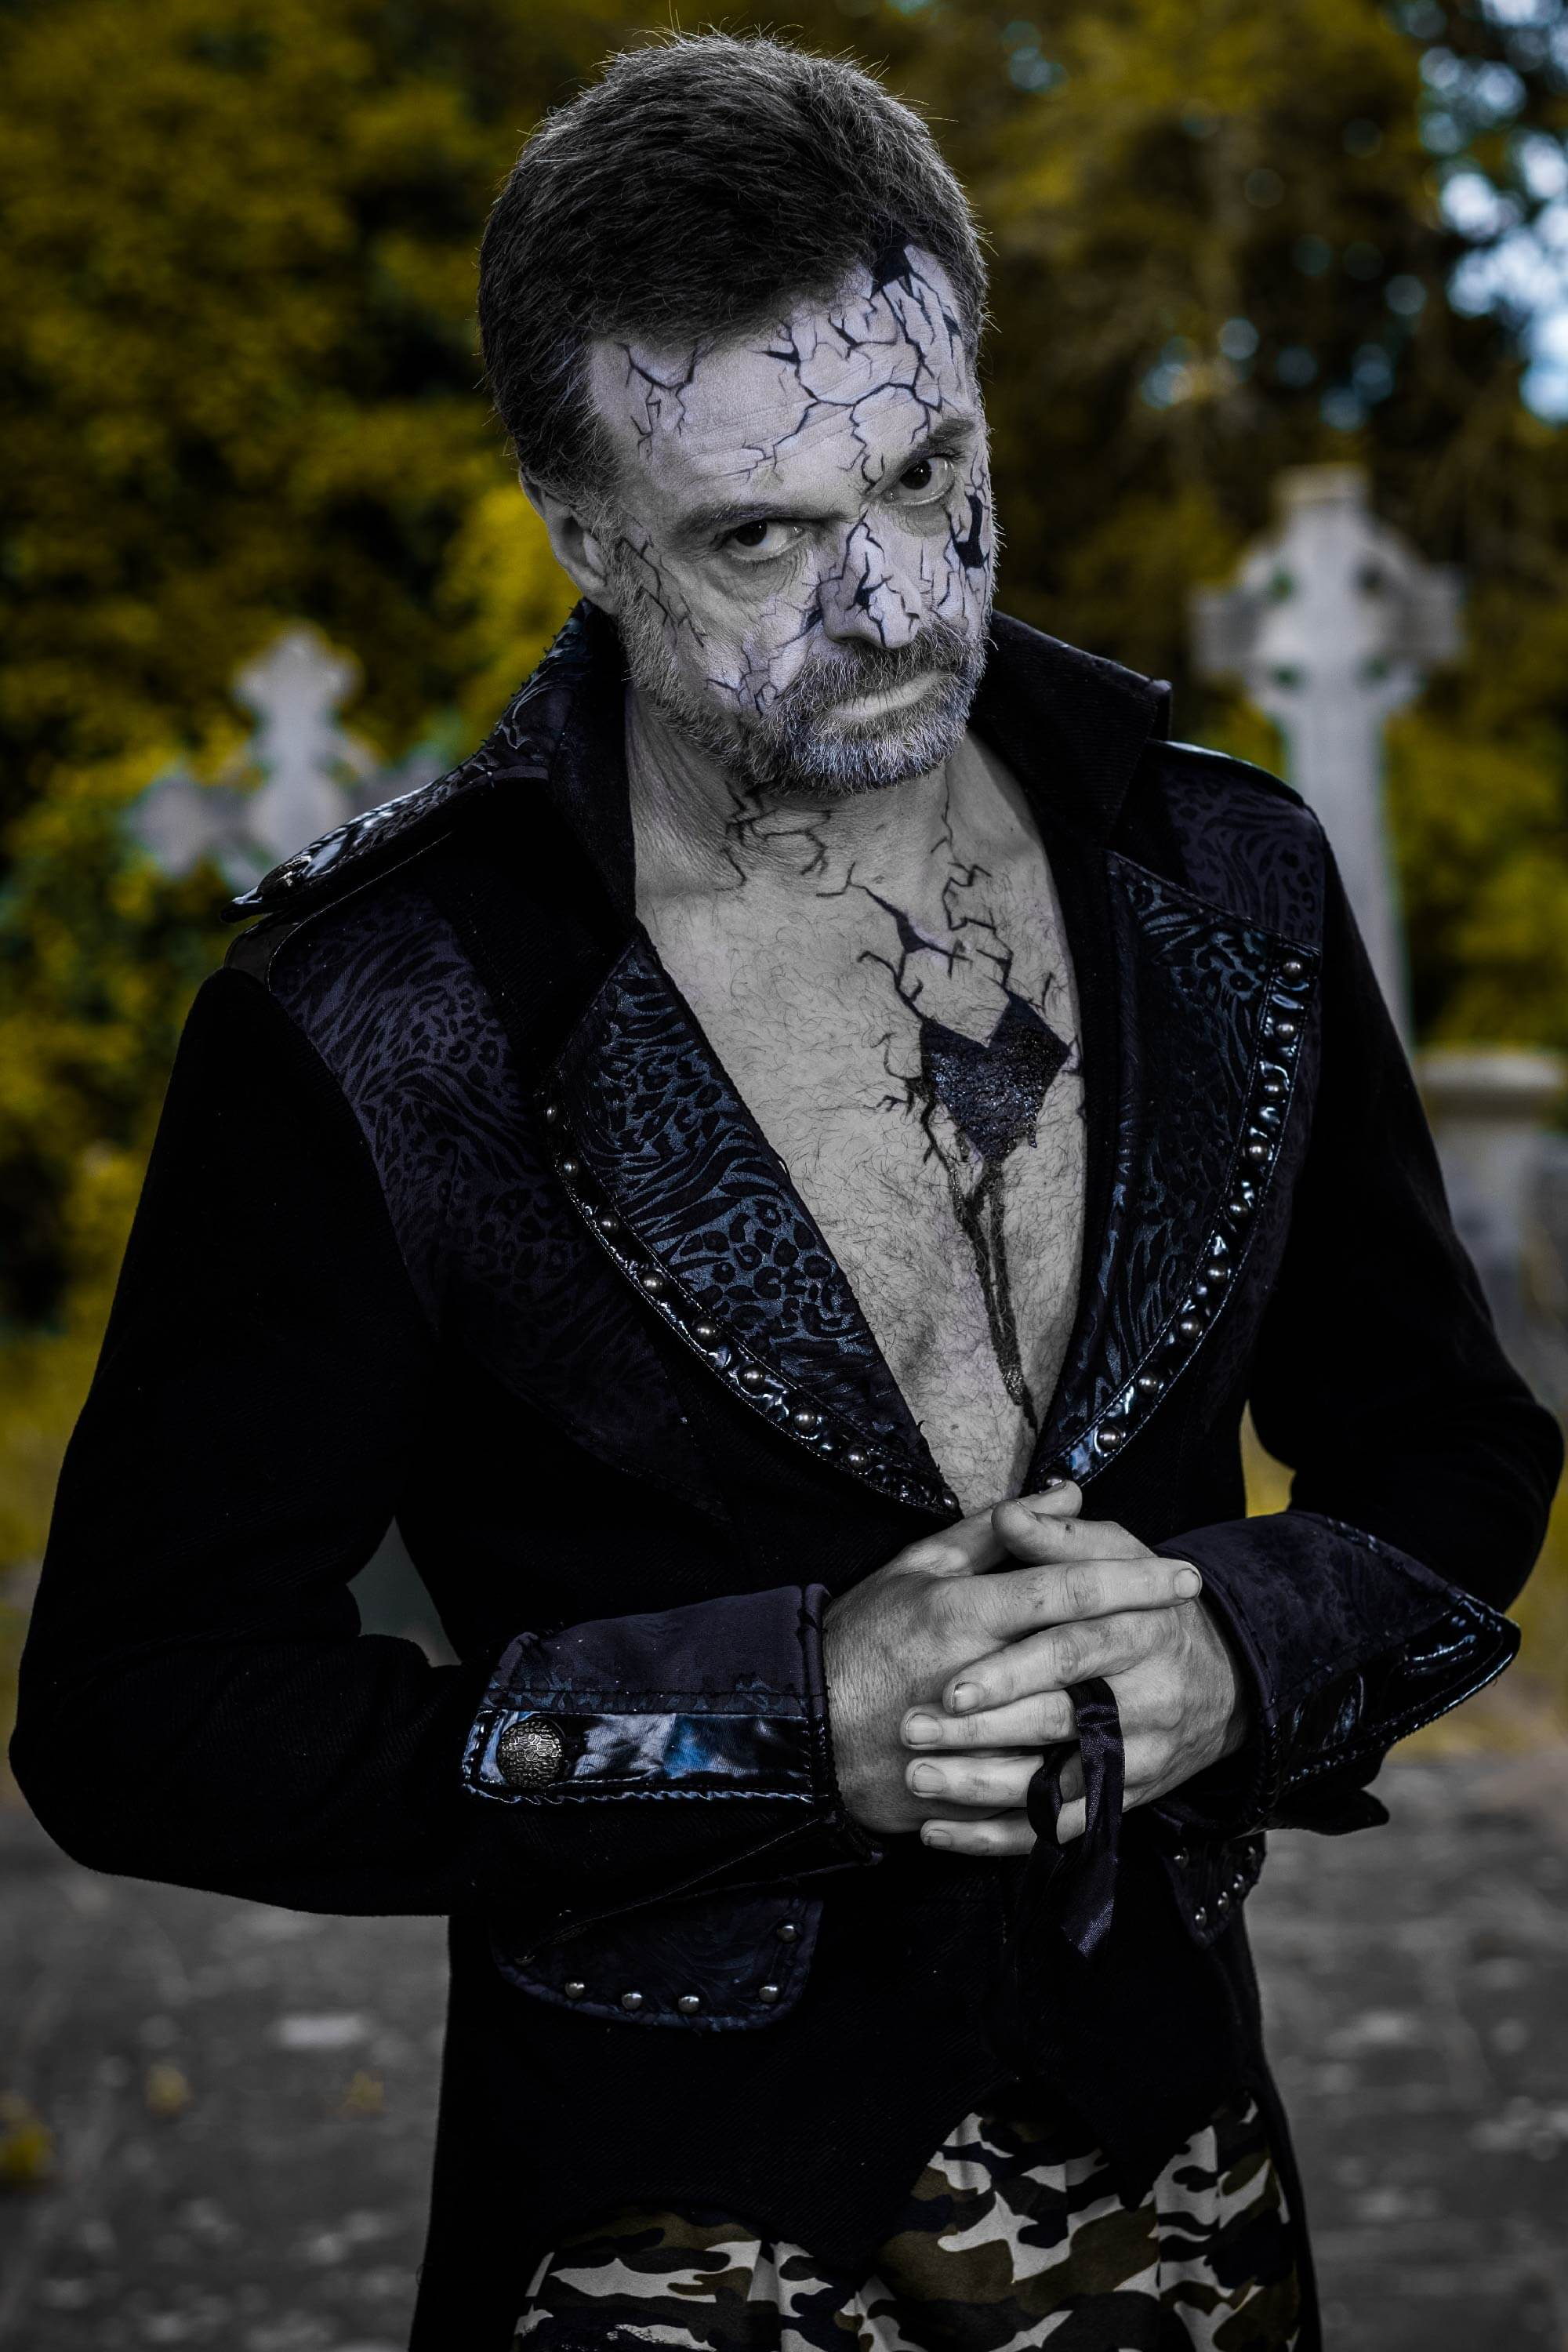 Fantasy makeup. A man with elaborate white zombie makeup, wearing a suit jacket, poses for a photo in a park.